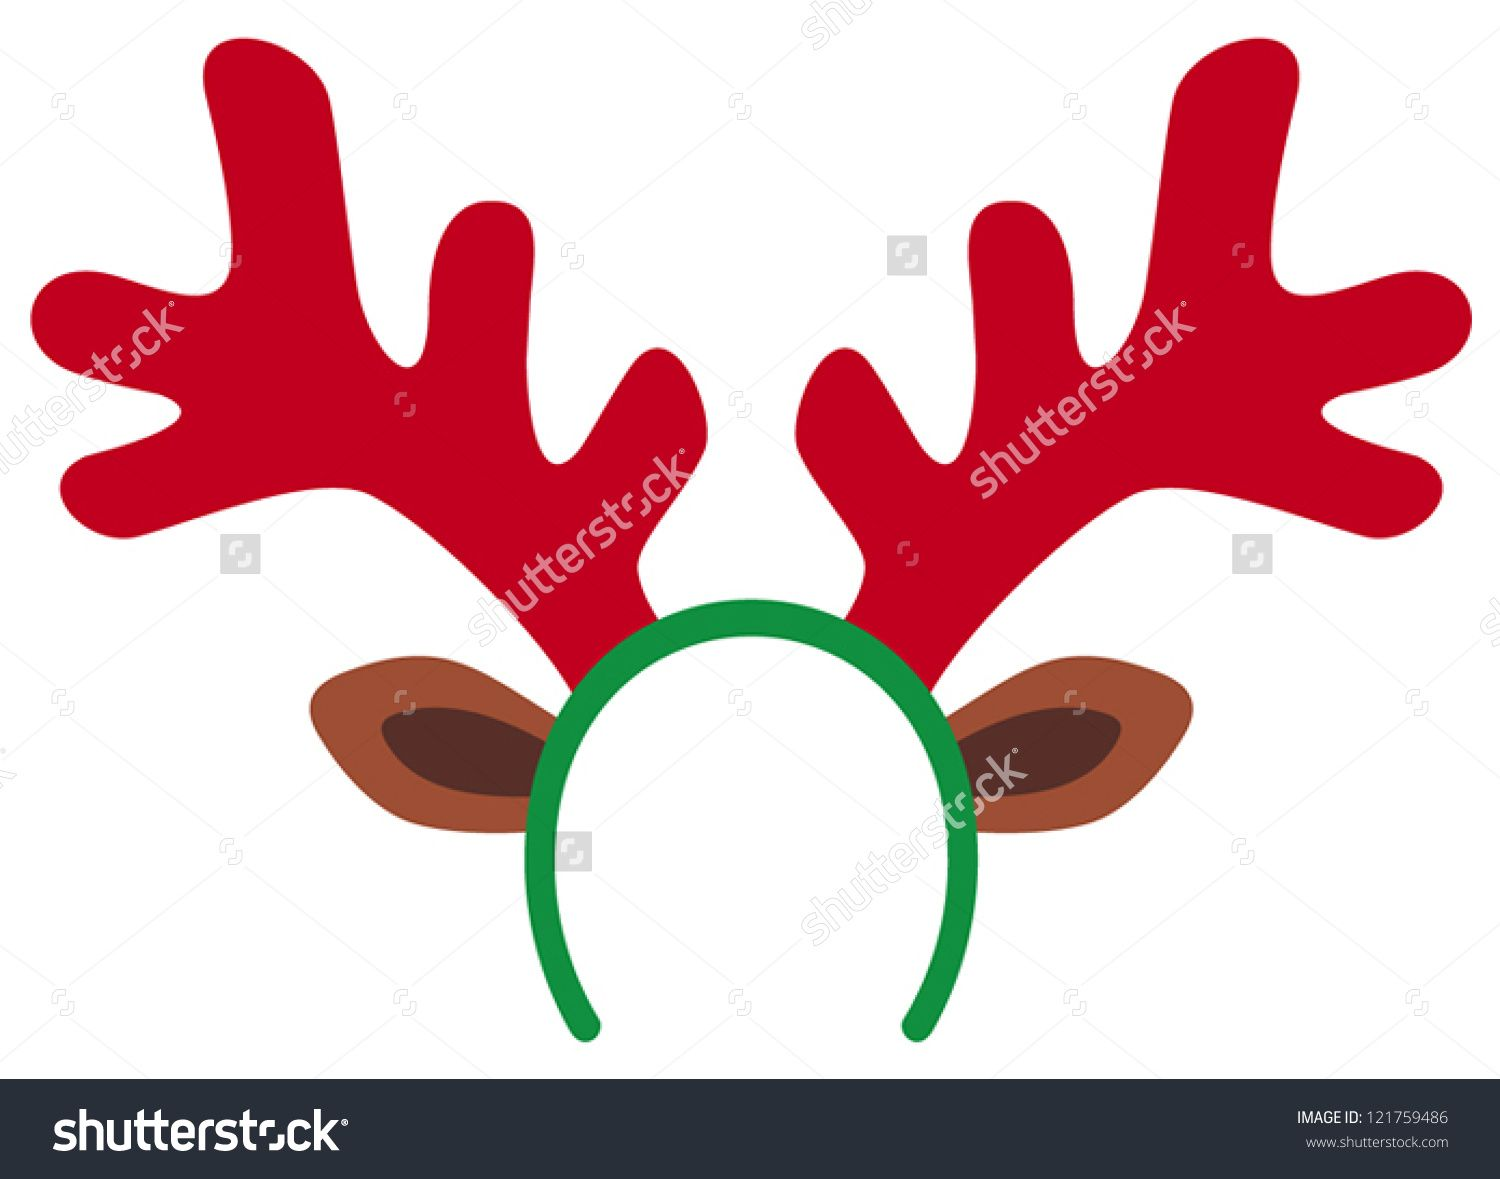 Christmas deer clipartfox crafts. Antlers clipart rudolph